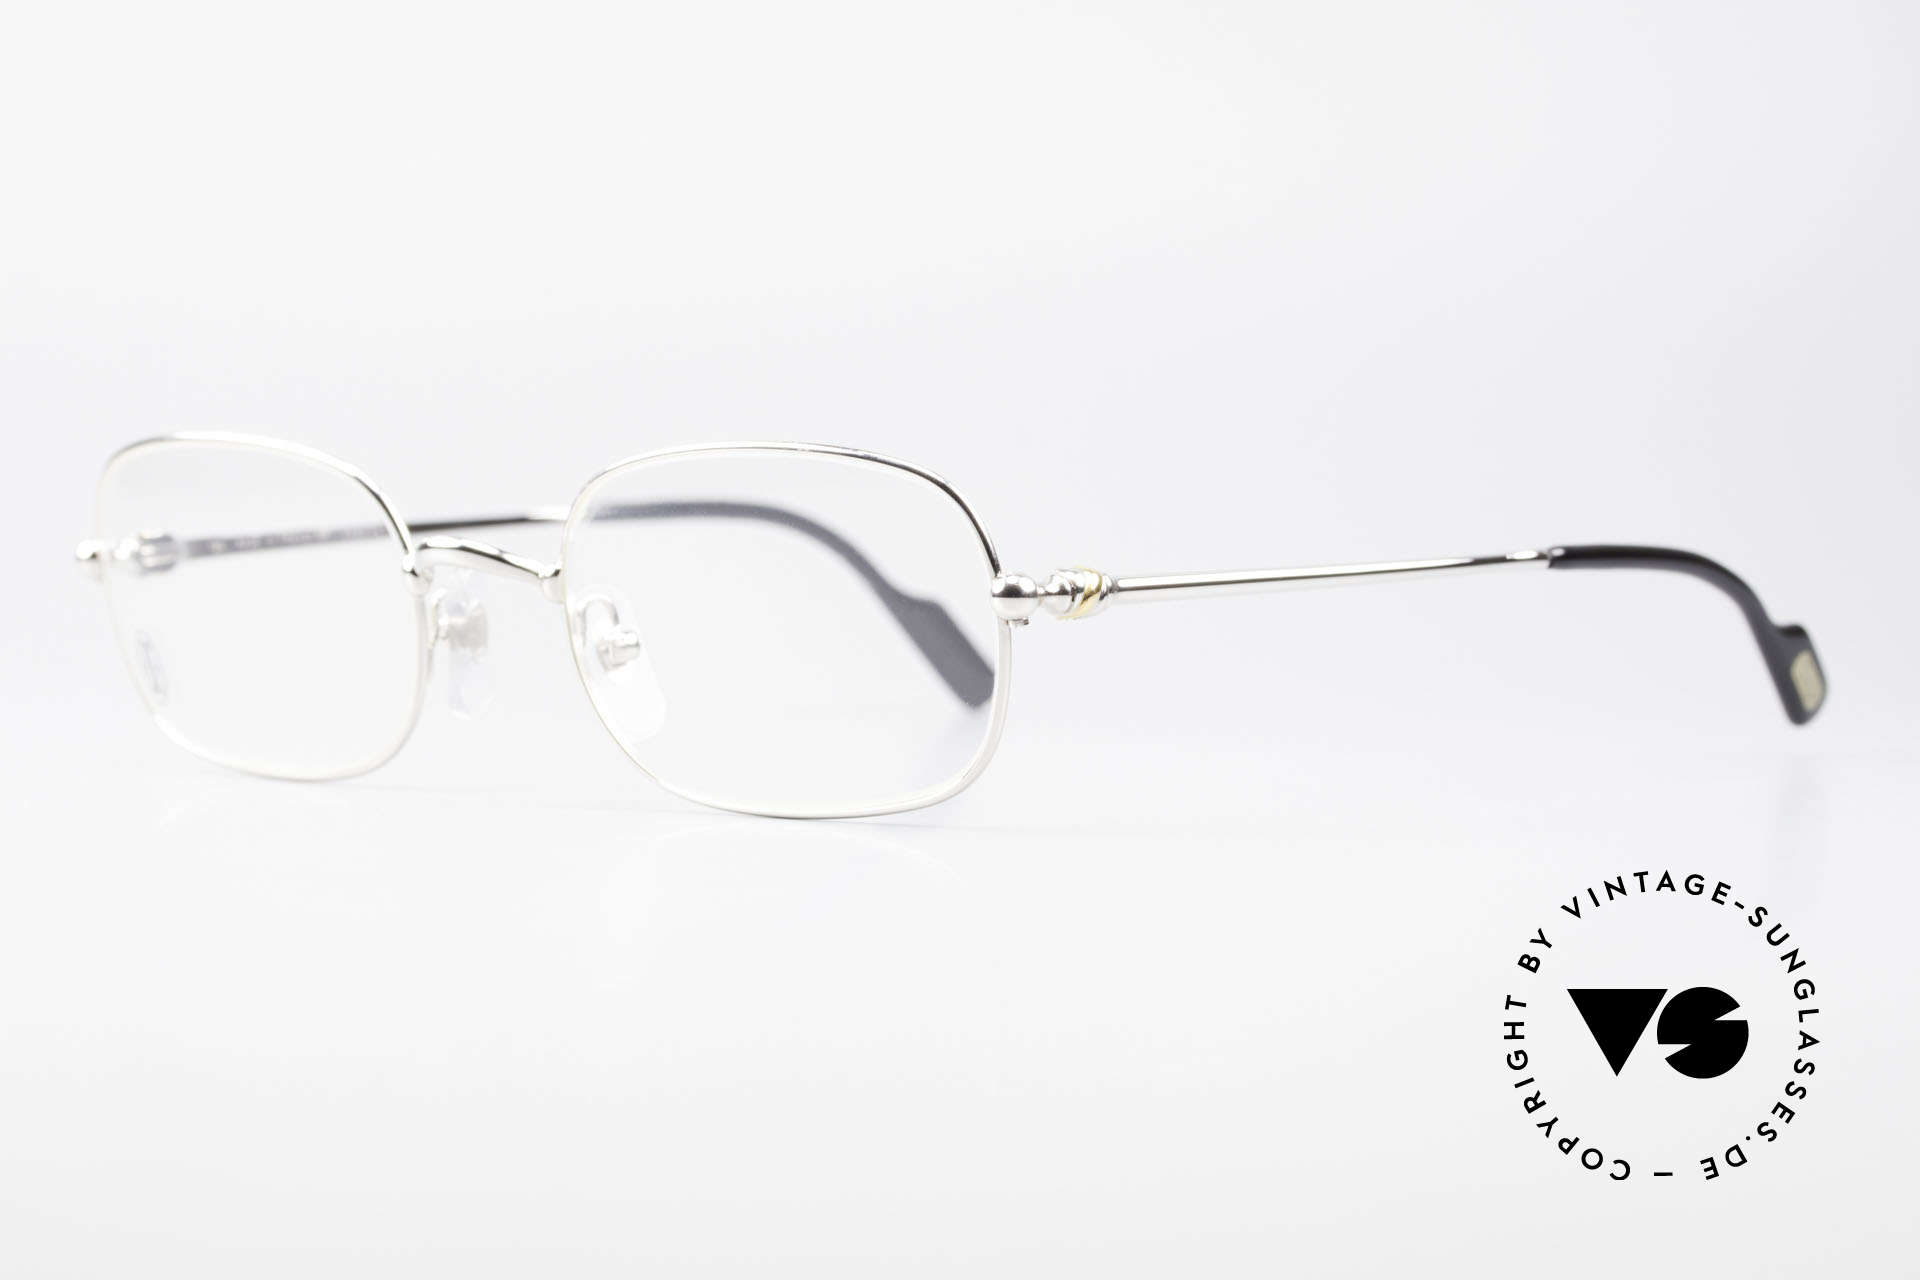 Cartier Deimios Square Frame Luxury Platinum, costly 'Platine Edition' (frame with platinum finish), Made for Men and Women